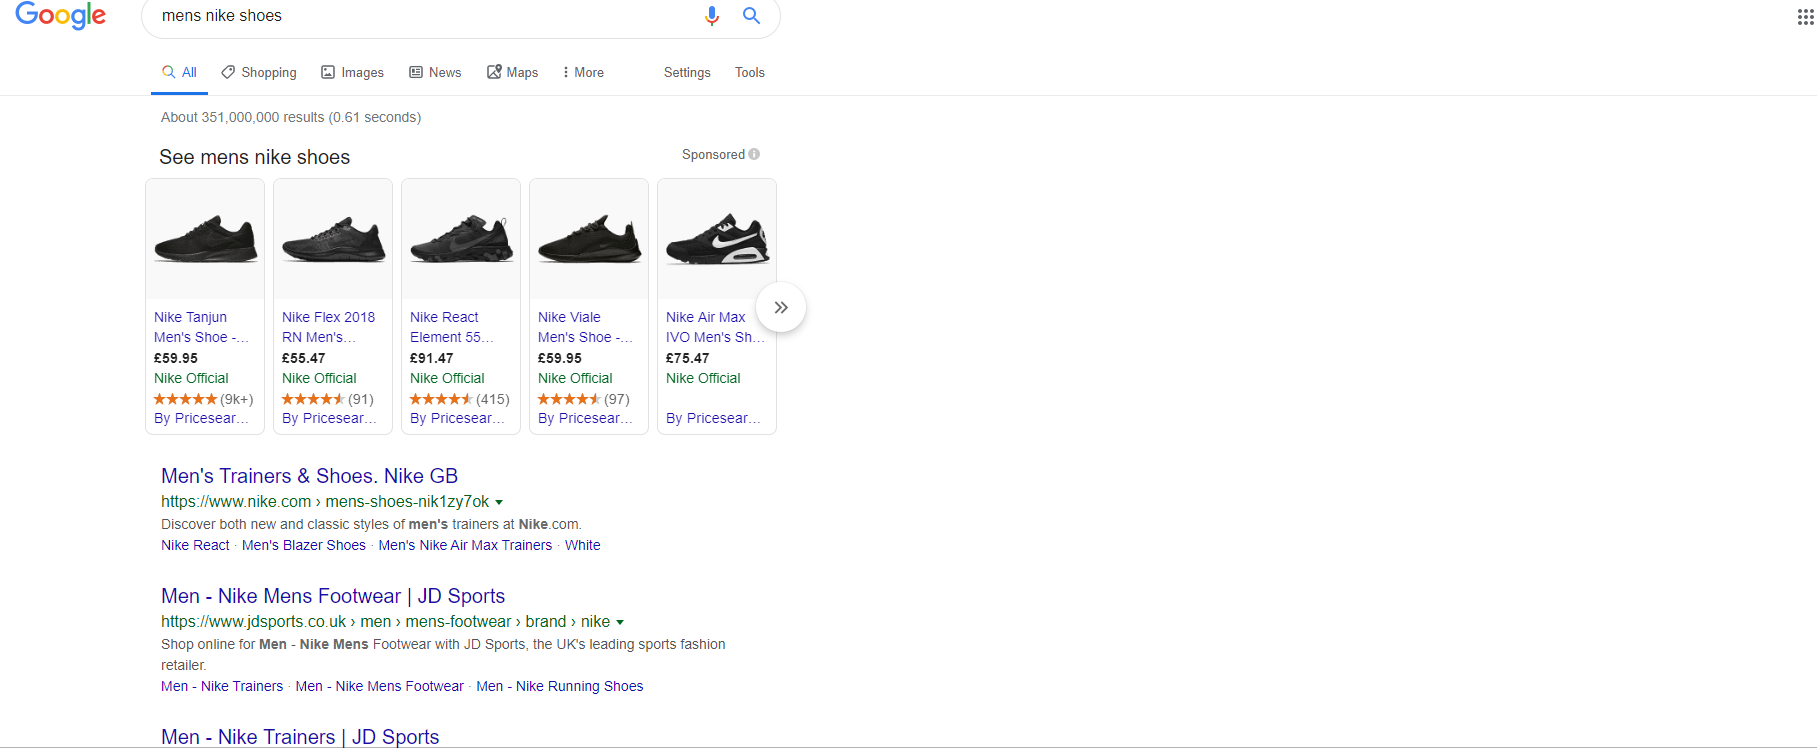 mens nike shoes - transactional search